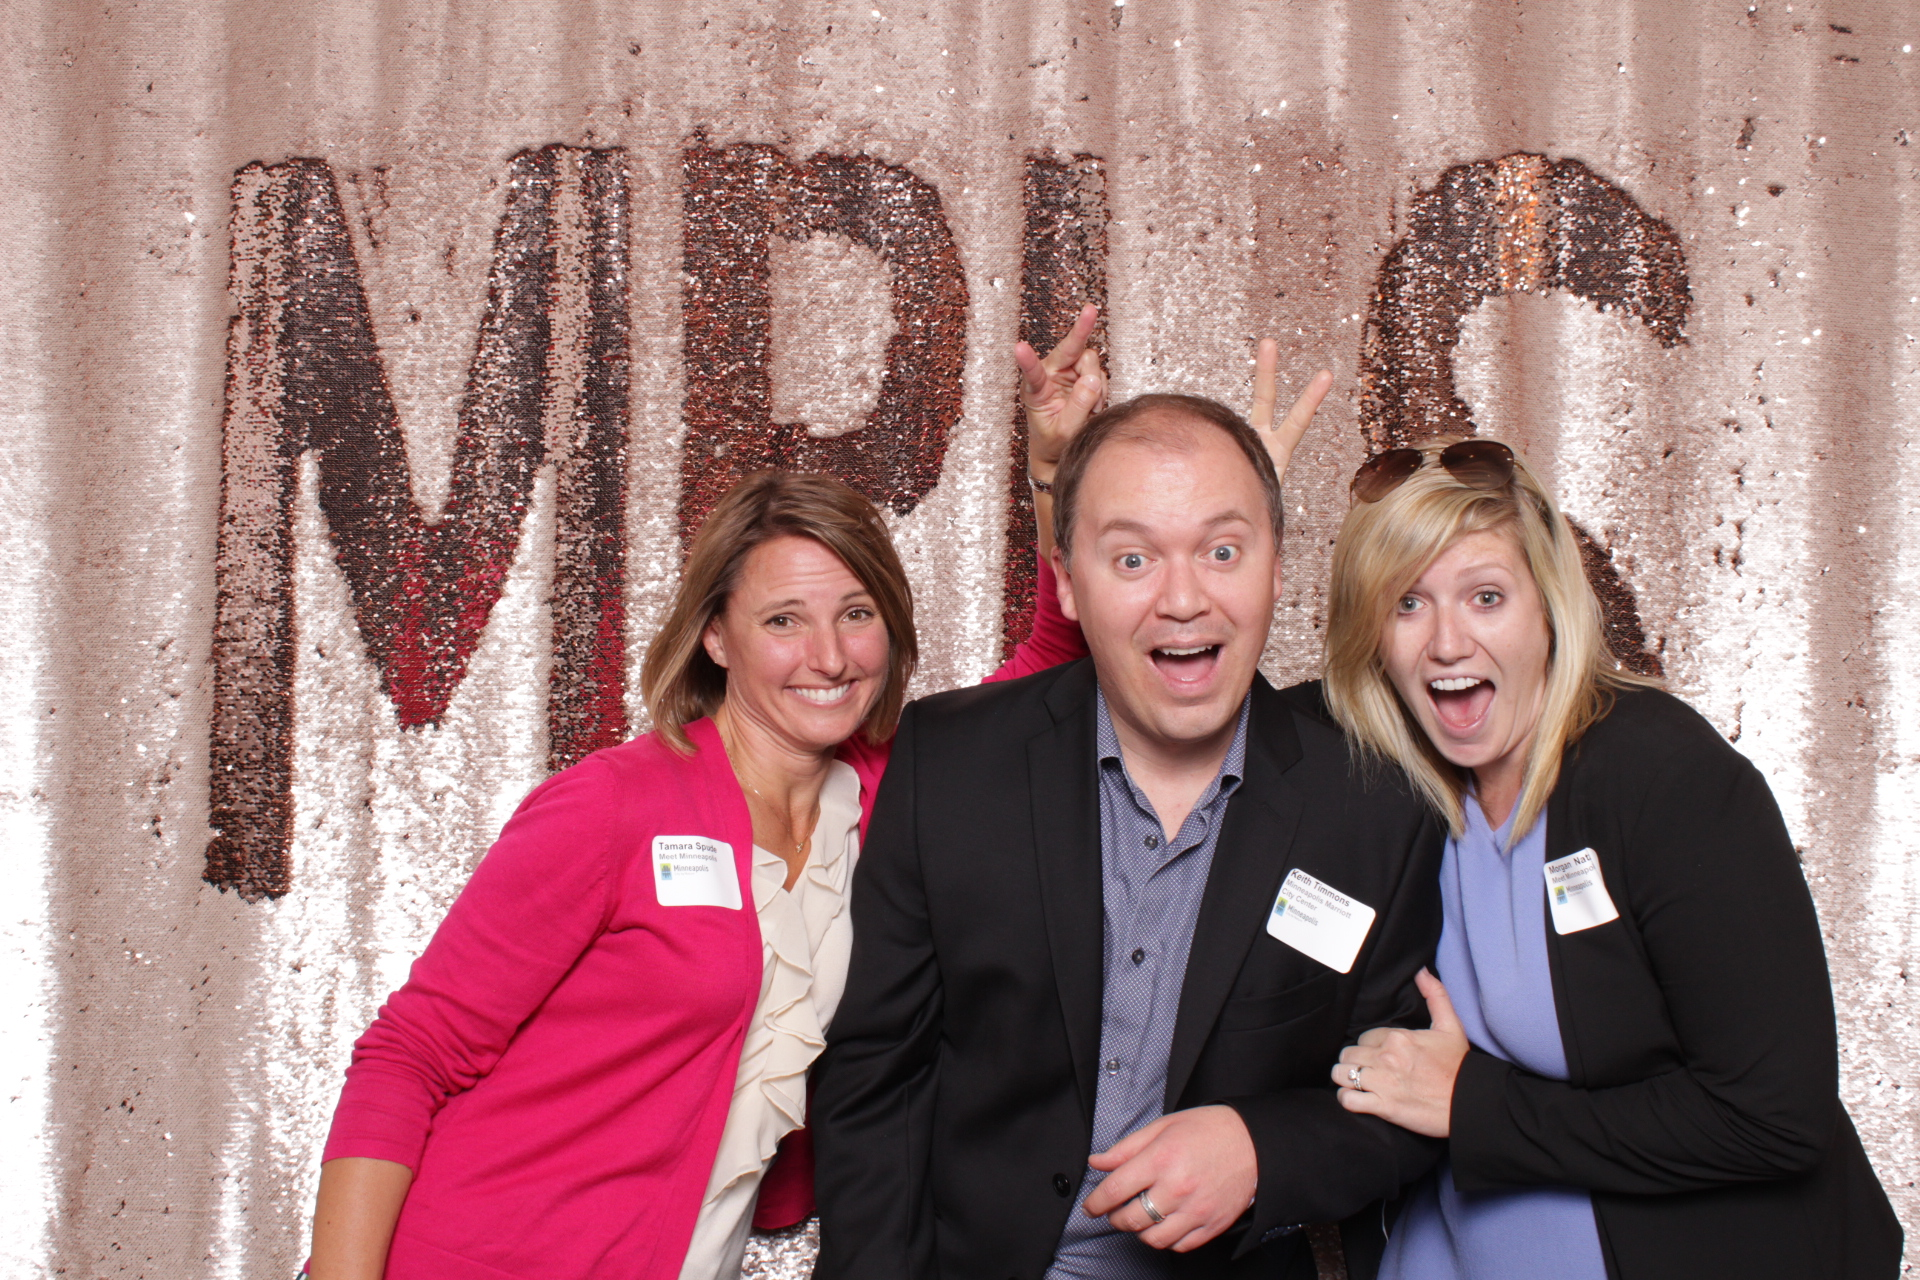 Minneapolis_corporate_photo_booth_rentals (7).jpg